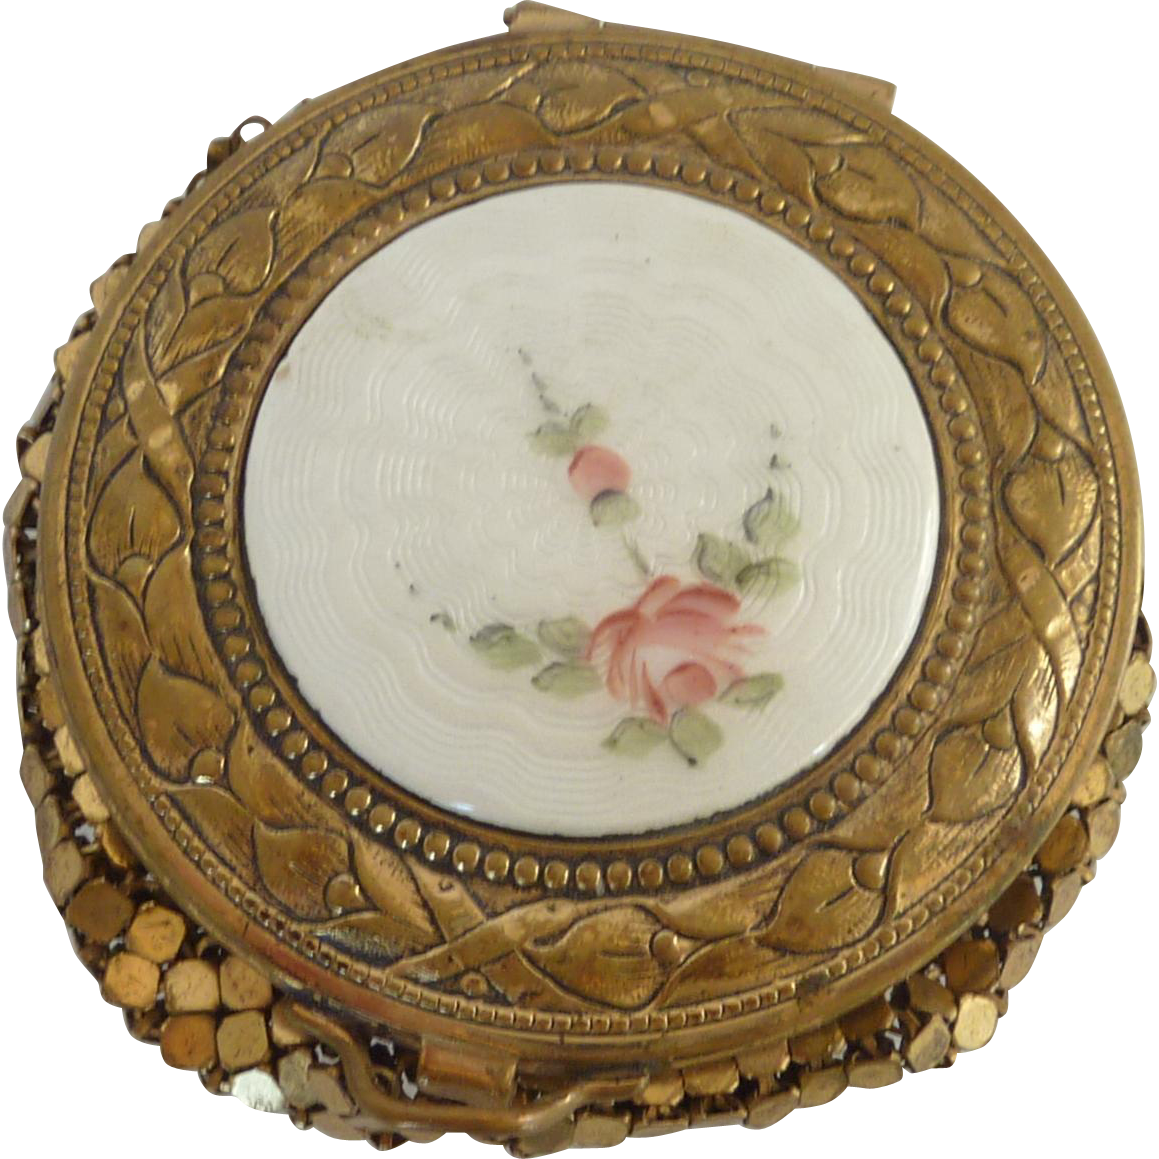 Guilloche Mirrored Compact with Gold Tone Mesh